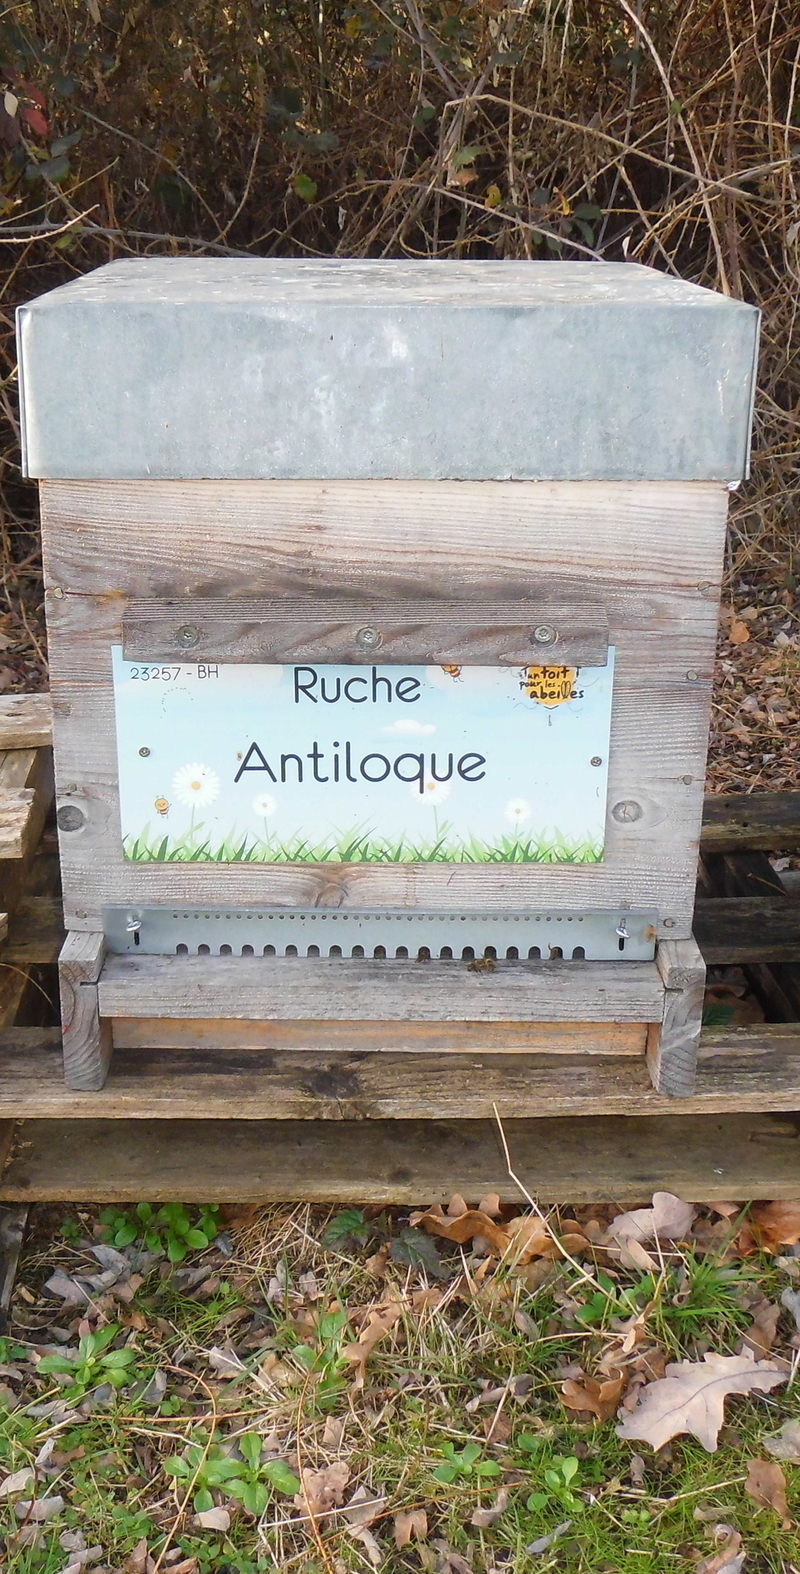 La ruche Antiloque